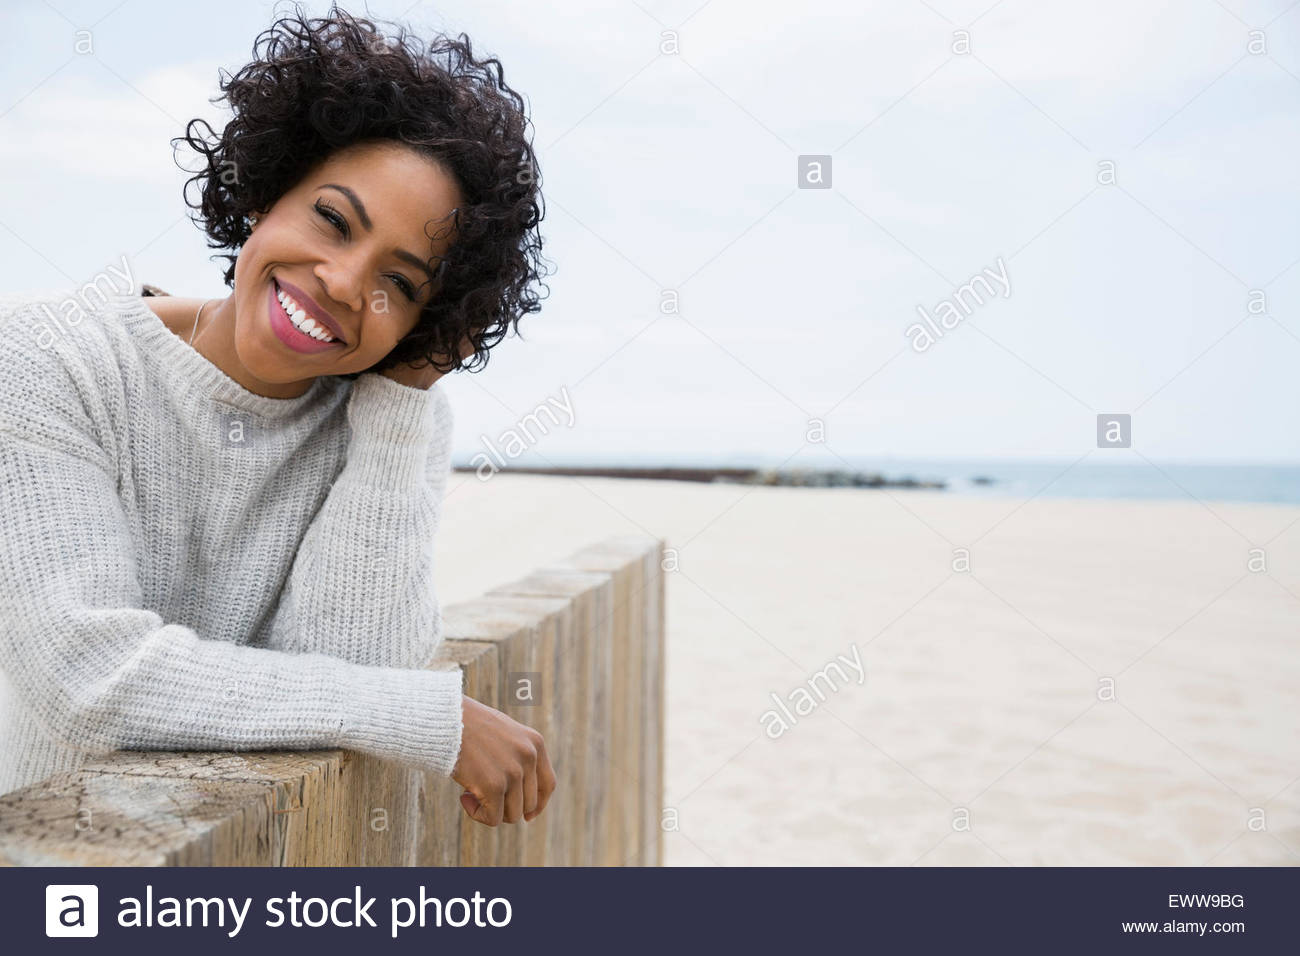 Portrait smiling woman curly black hair beach wall - Stock Image